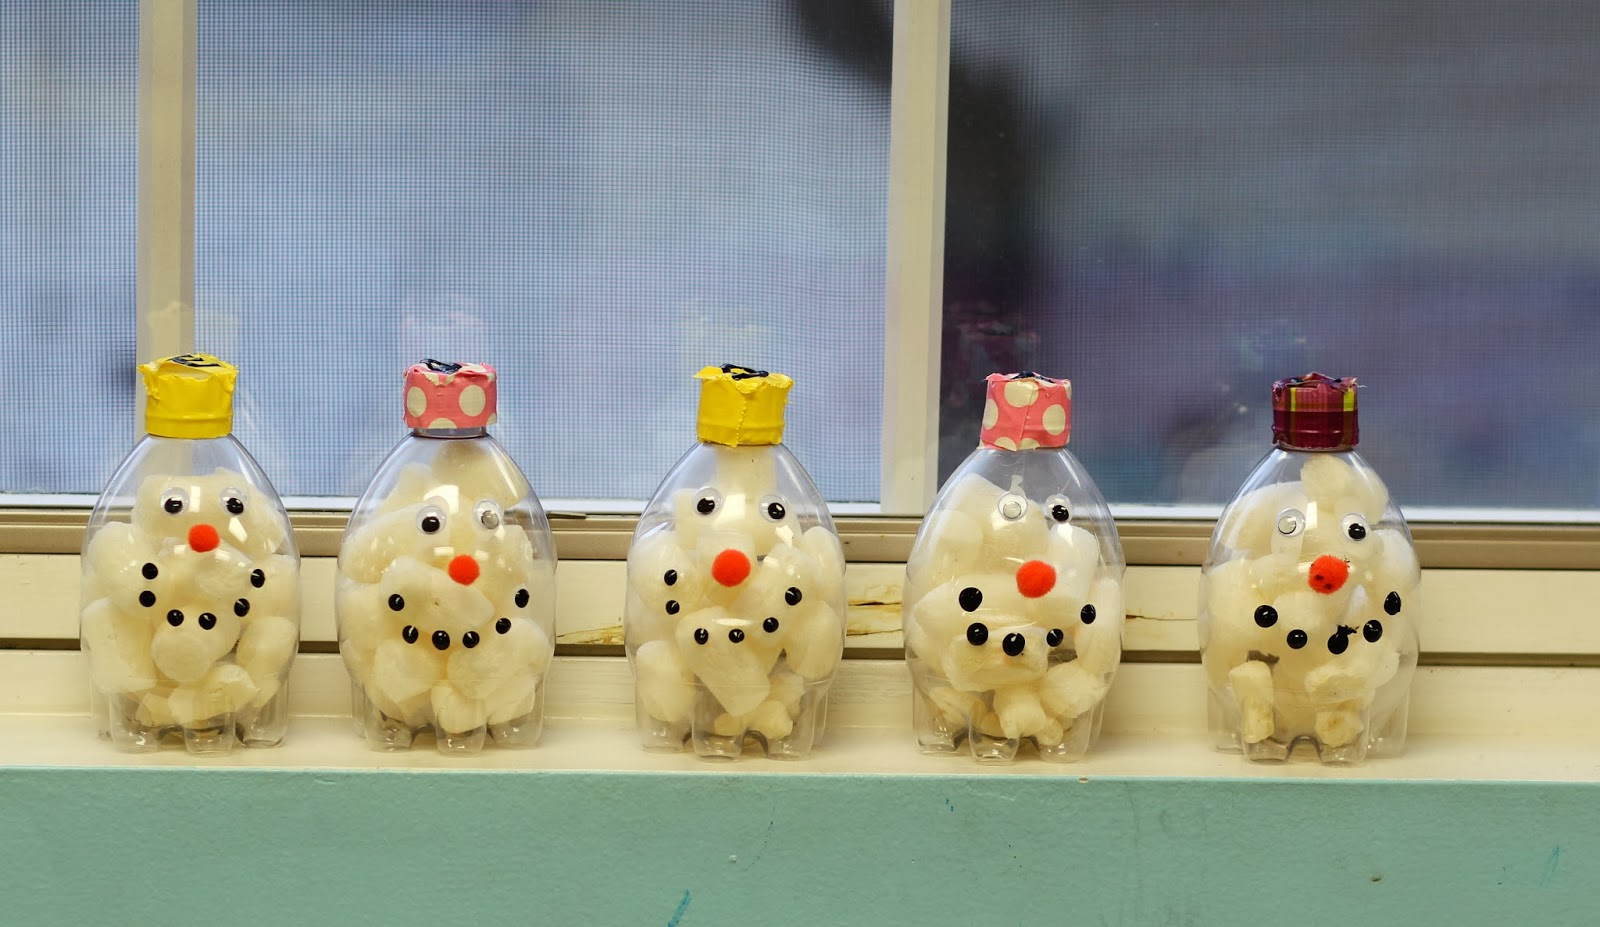 Teach Them To Fly Counting Snowballs To Make A Recycled Snowman